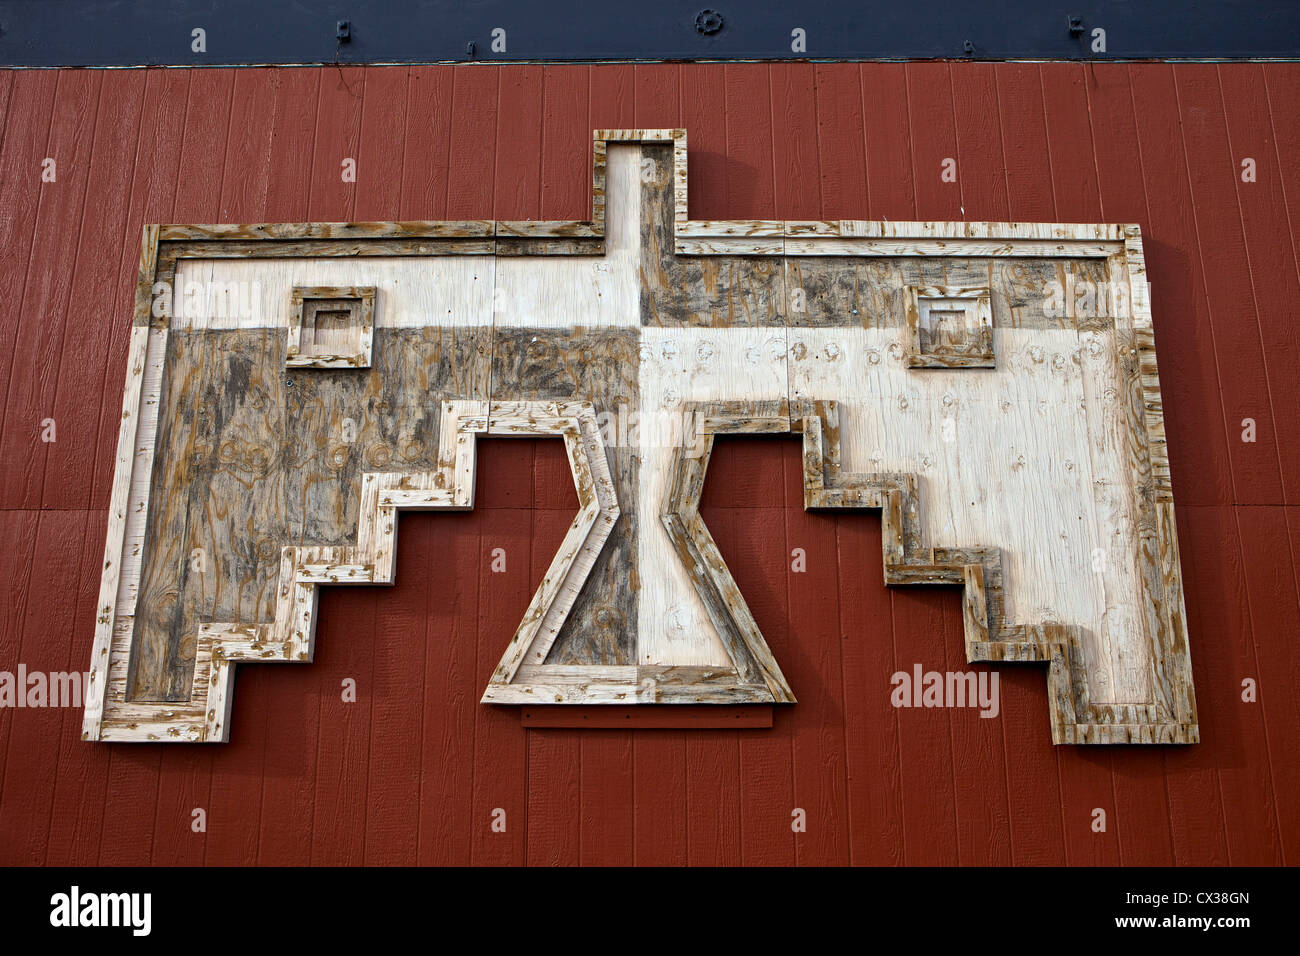 Fading wooden thunderbird on the side of a red building in Winslow, Arizona - Stock Image